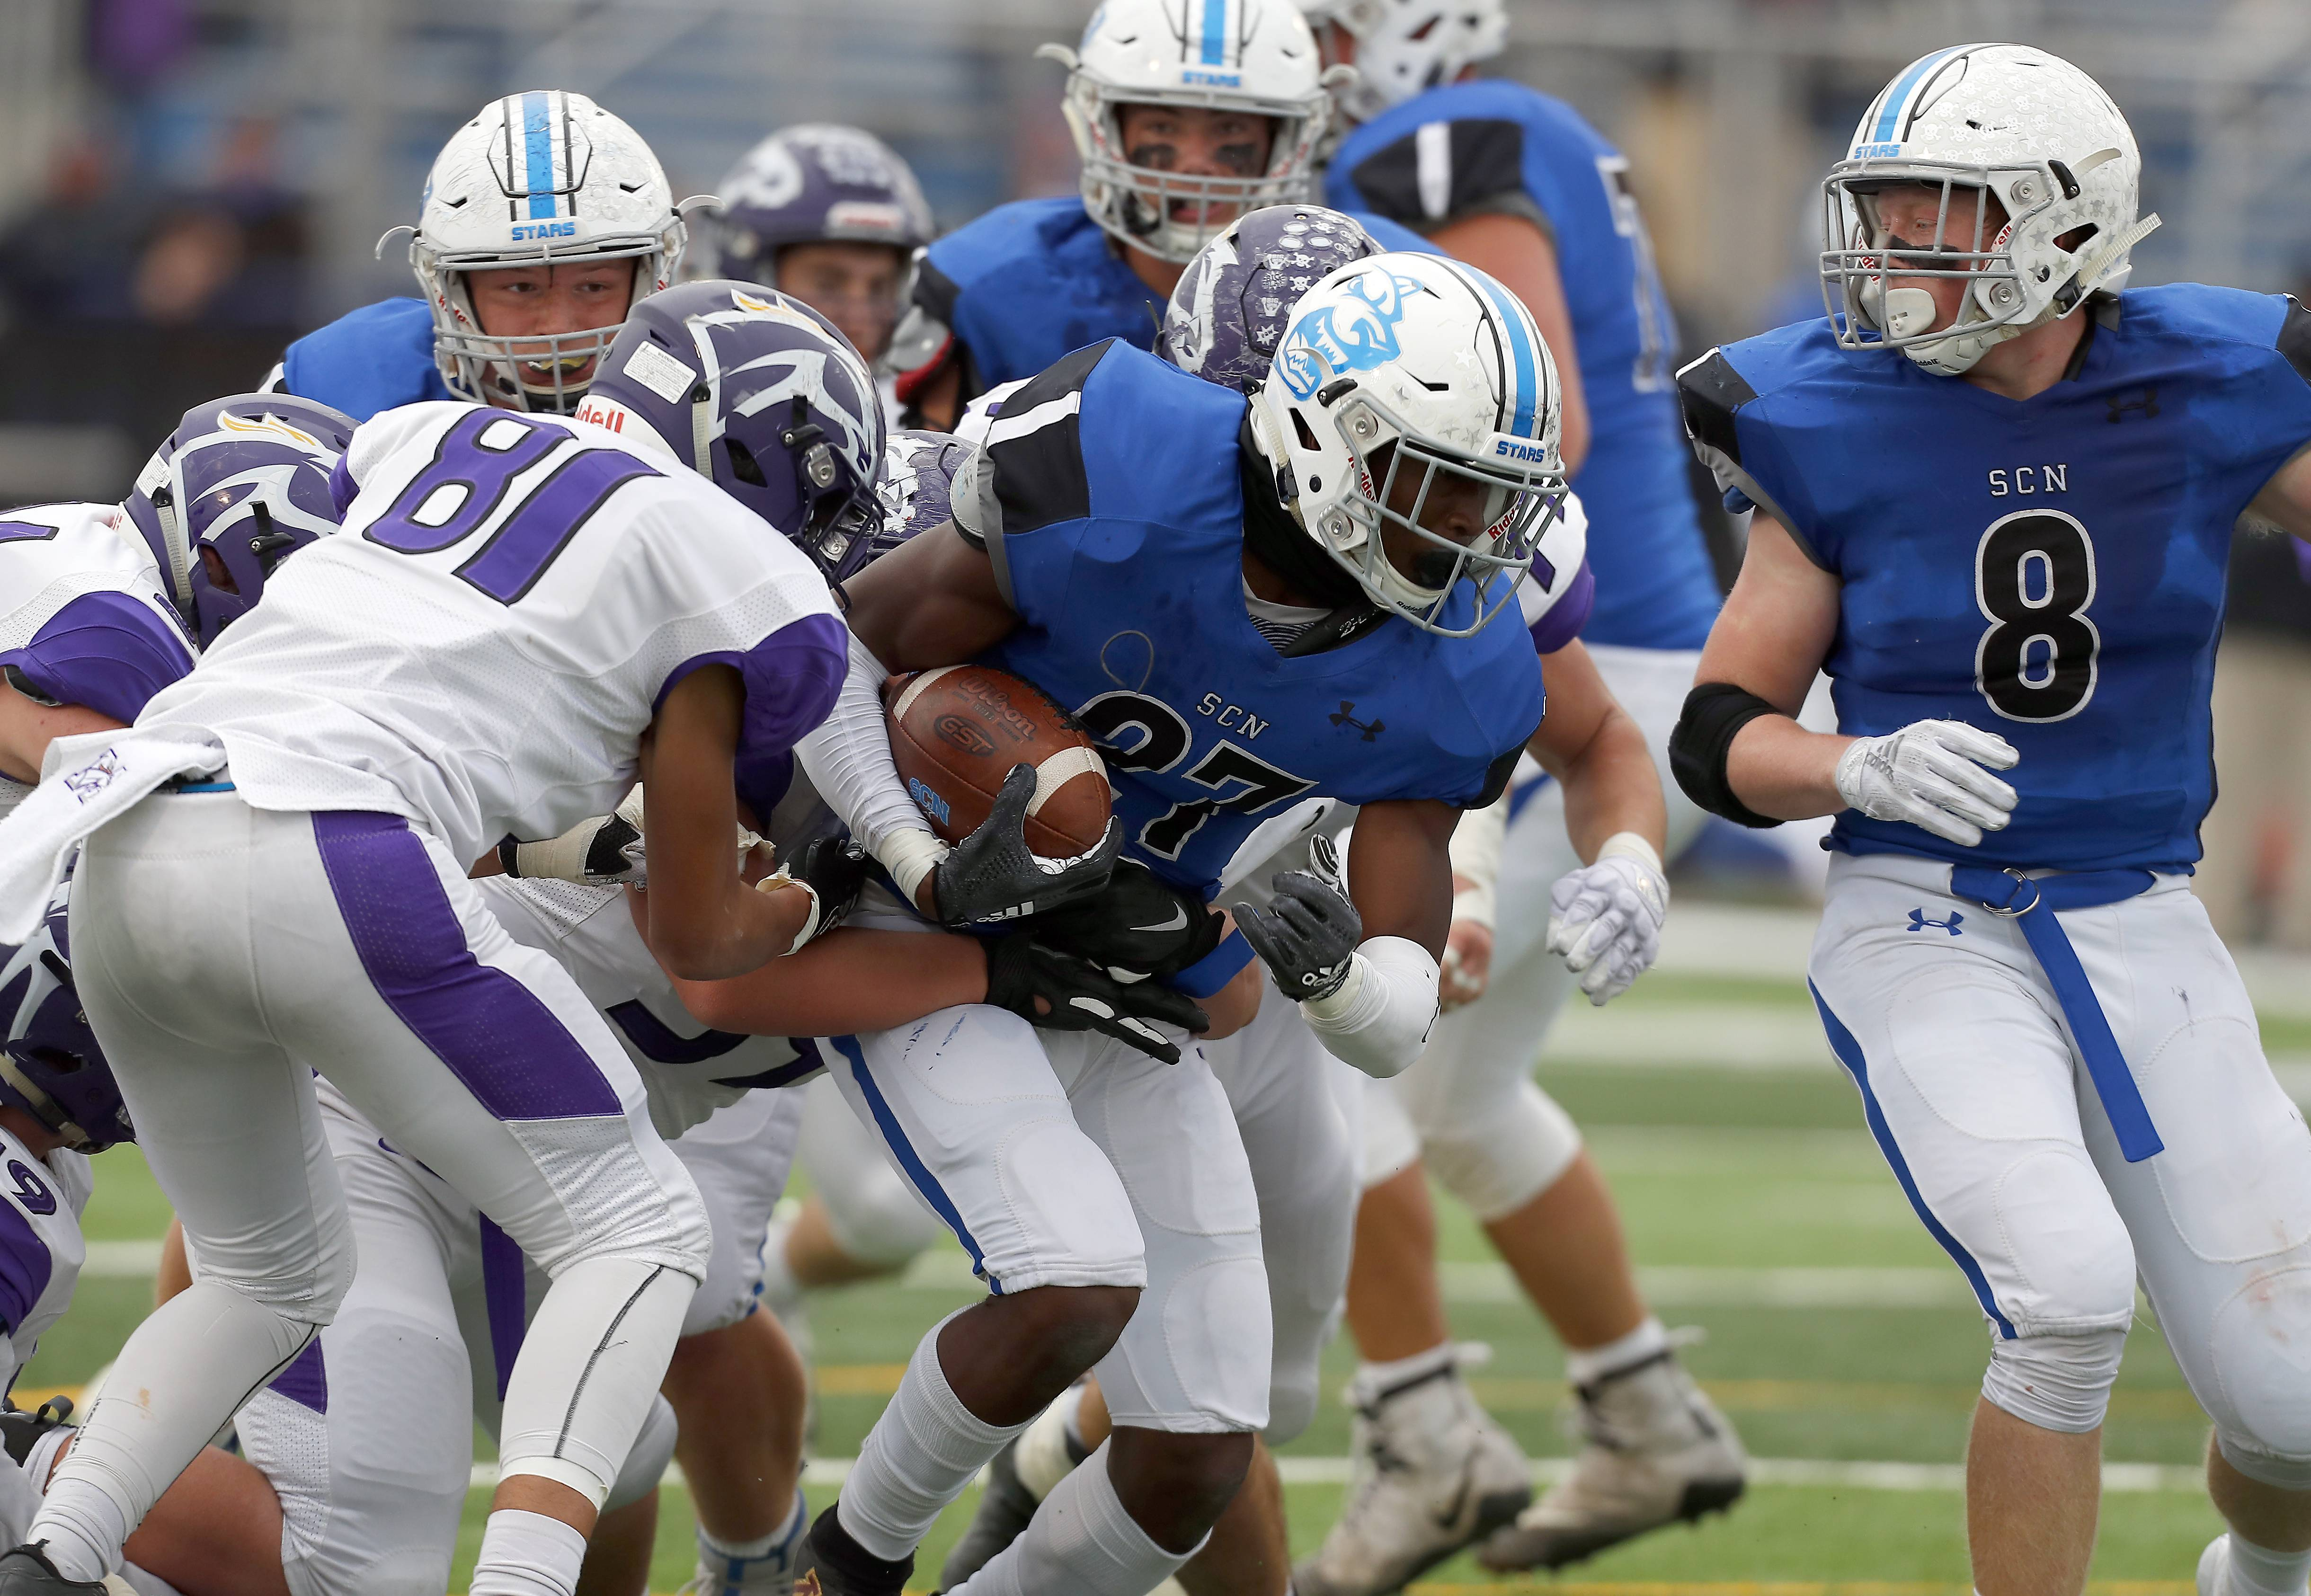 St. Charles North's Tyler Nubin (27) moves upfield with a whole pack of Rolling Meadows players Saturday during IHSA Class 7A playoff football in St. Charles.